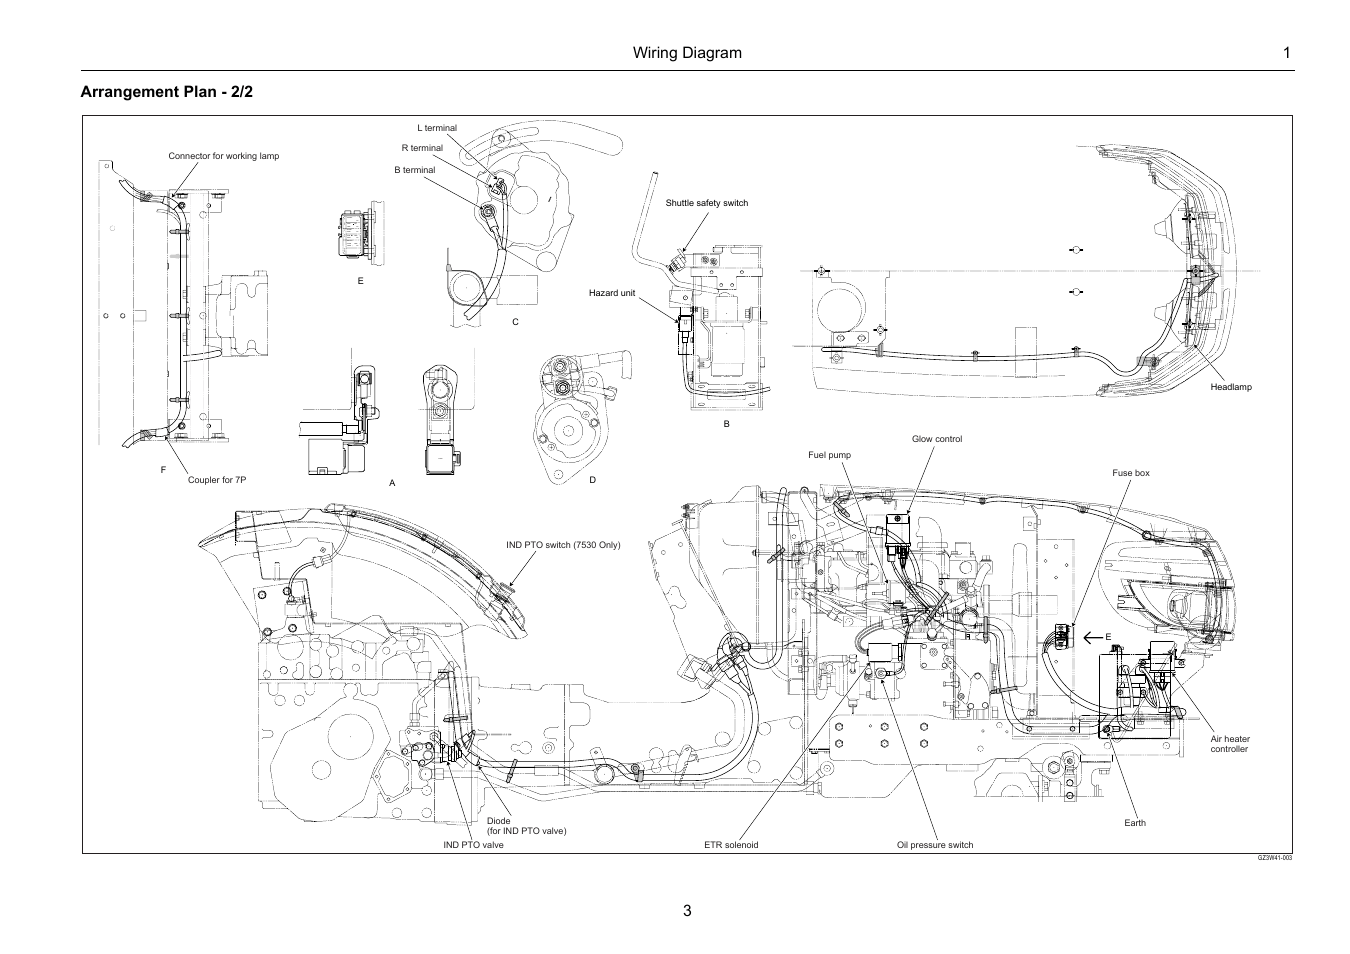 108 Cub Cadet Wiring Diagram Wiring Diagram 1 3 Arrangement Plan 2 2 Cub Cadet 7532